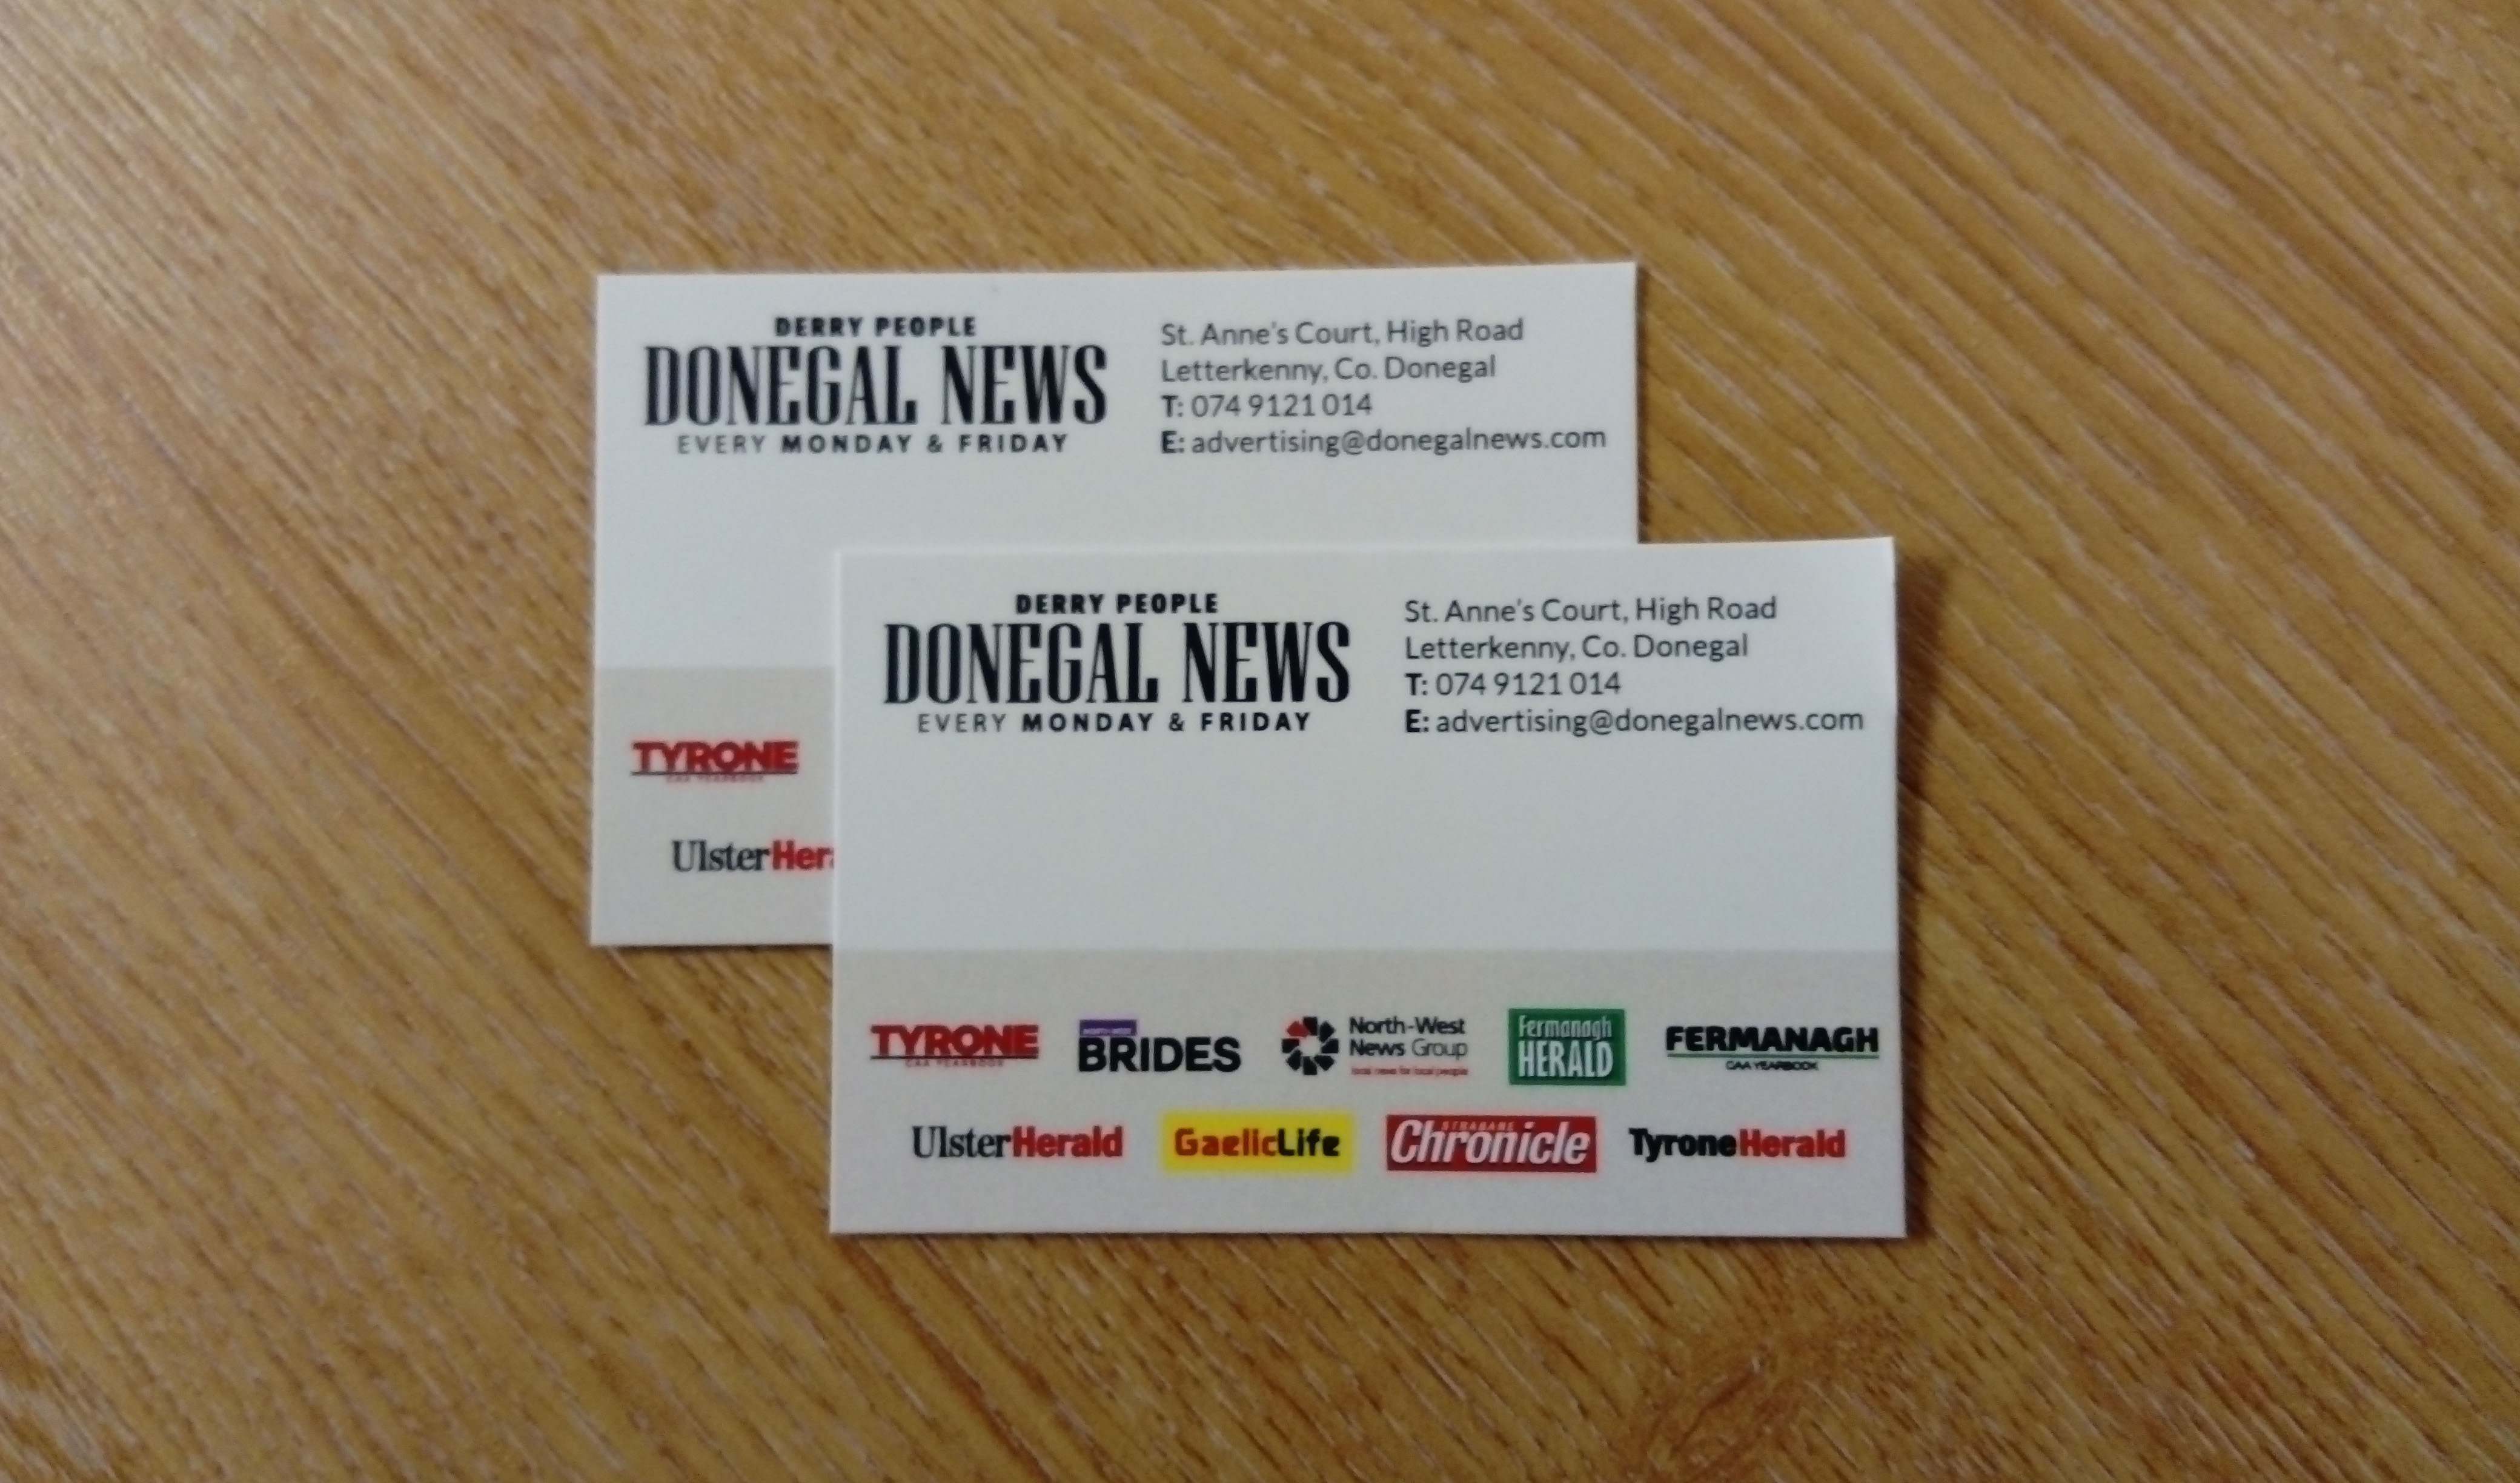 Donegal News - Single sided business cards